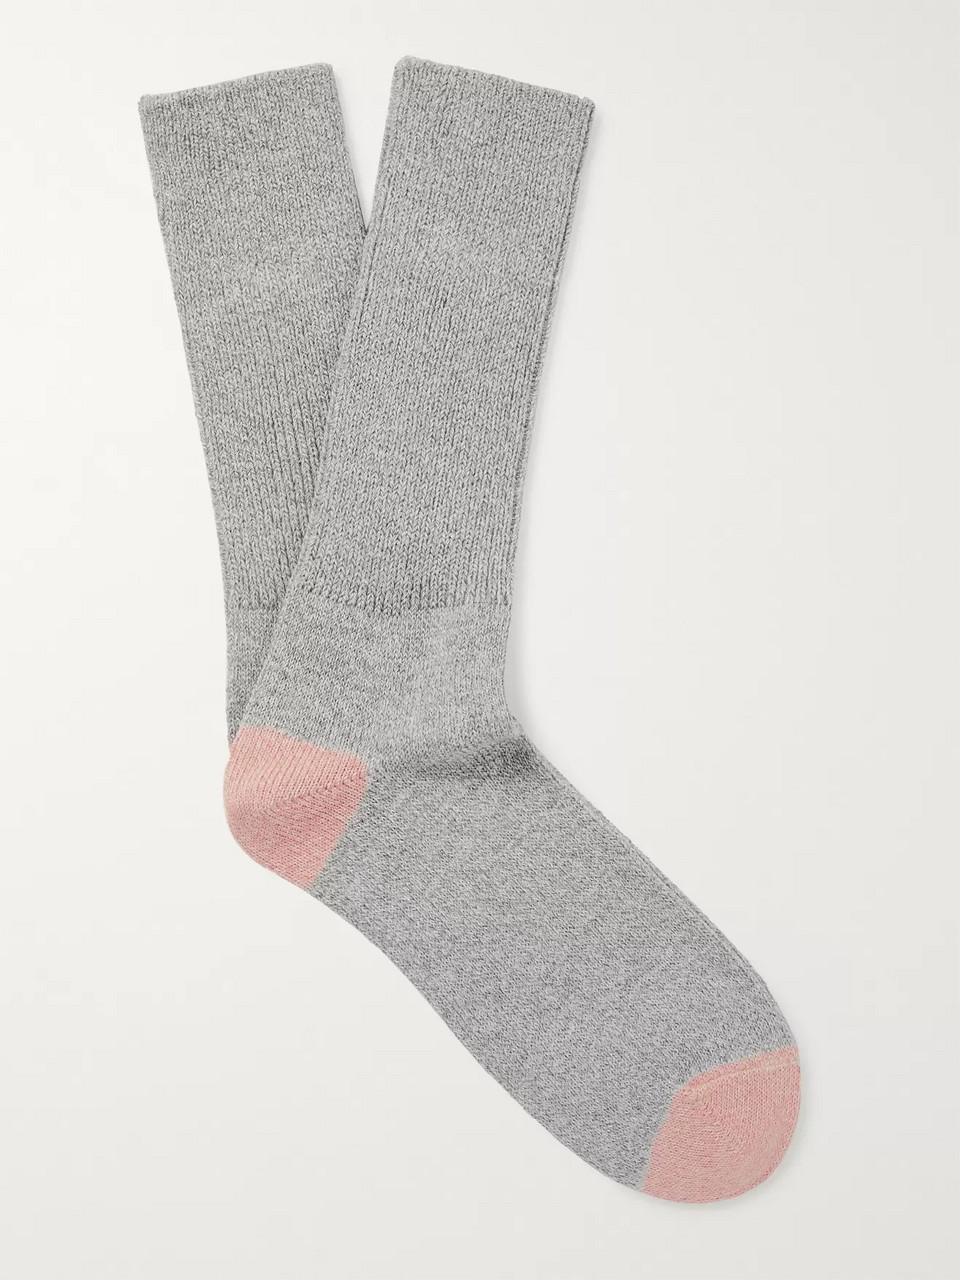 Mr P. Two-Tone Mélange Cotton-Blend Socks